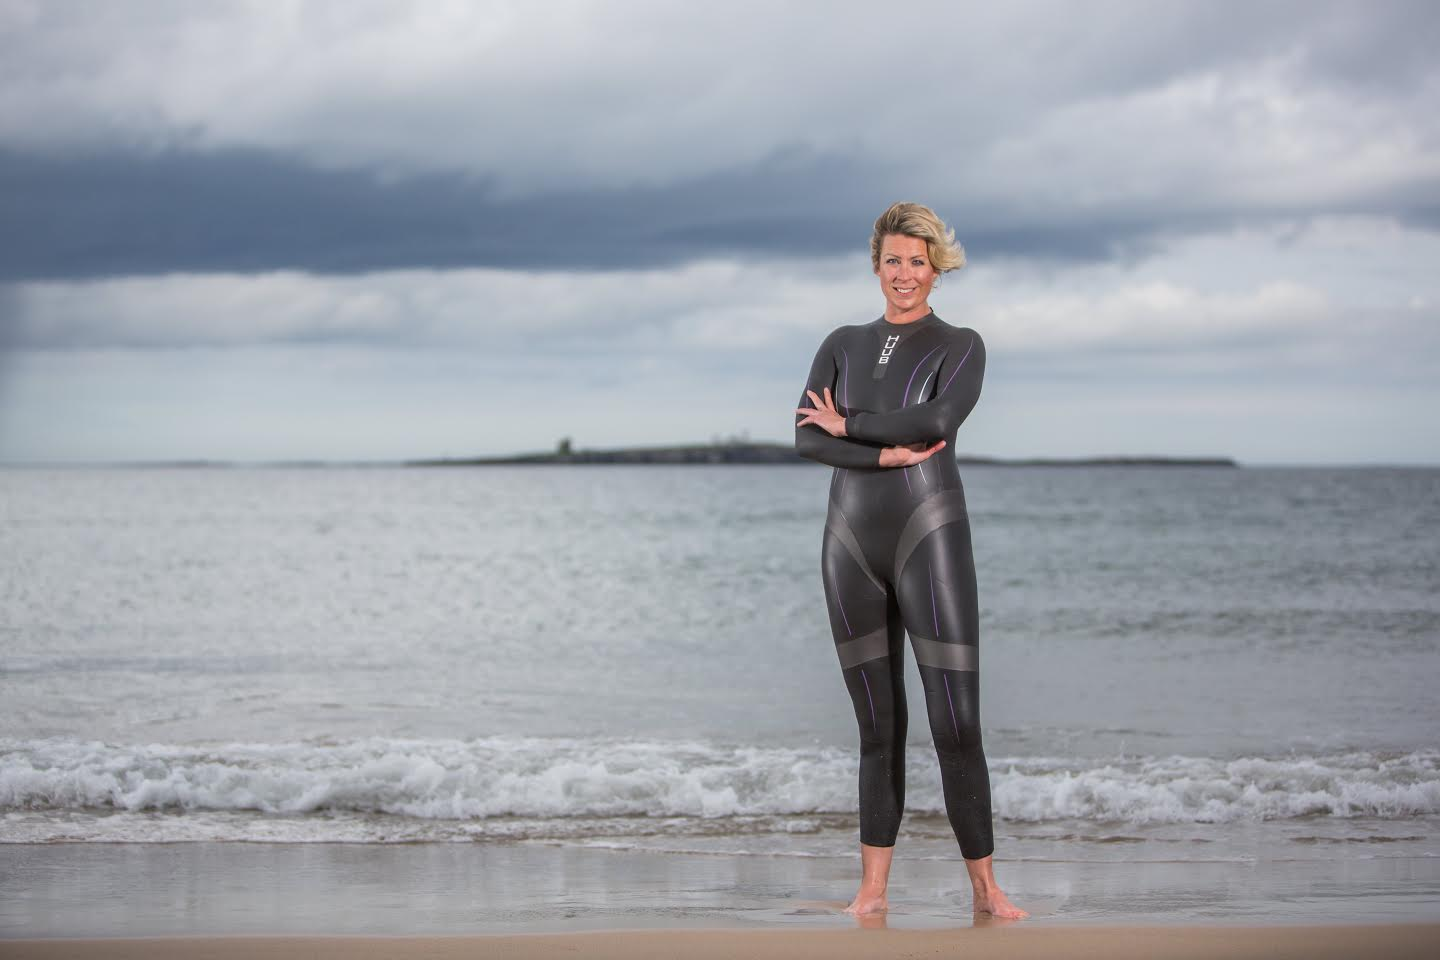 Claire's Farne Island Mermaid Swim